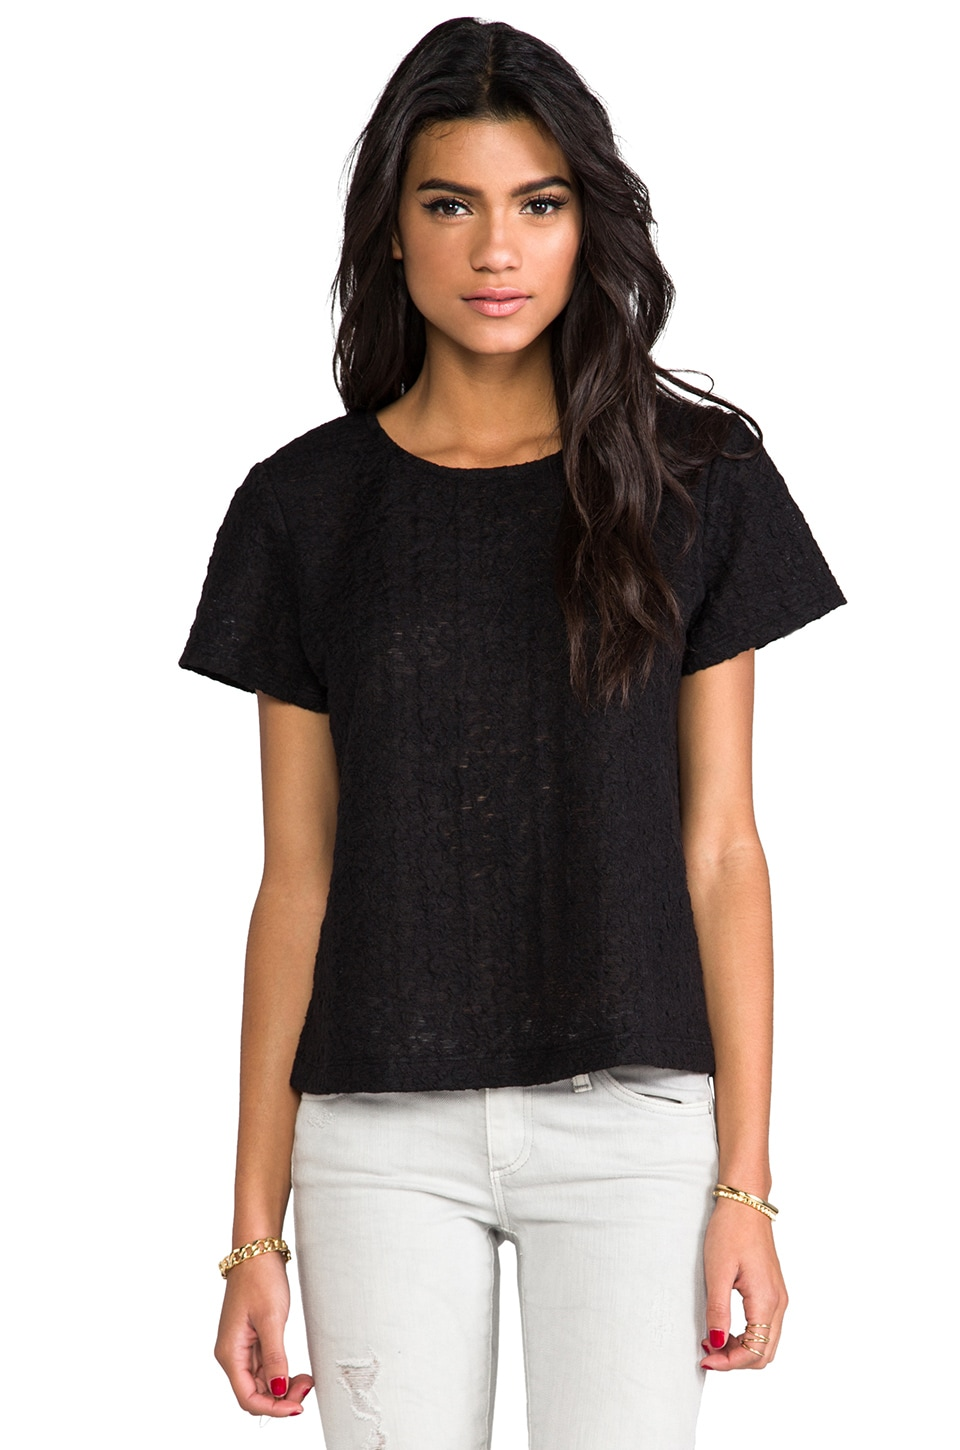 Heather Jacquard Sleeve Tee in Black